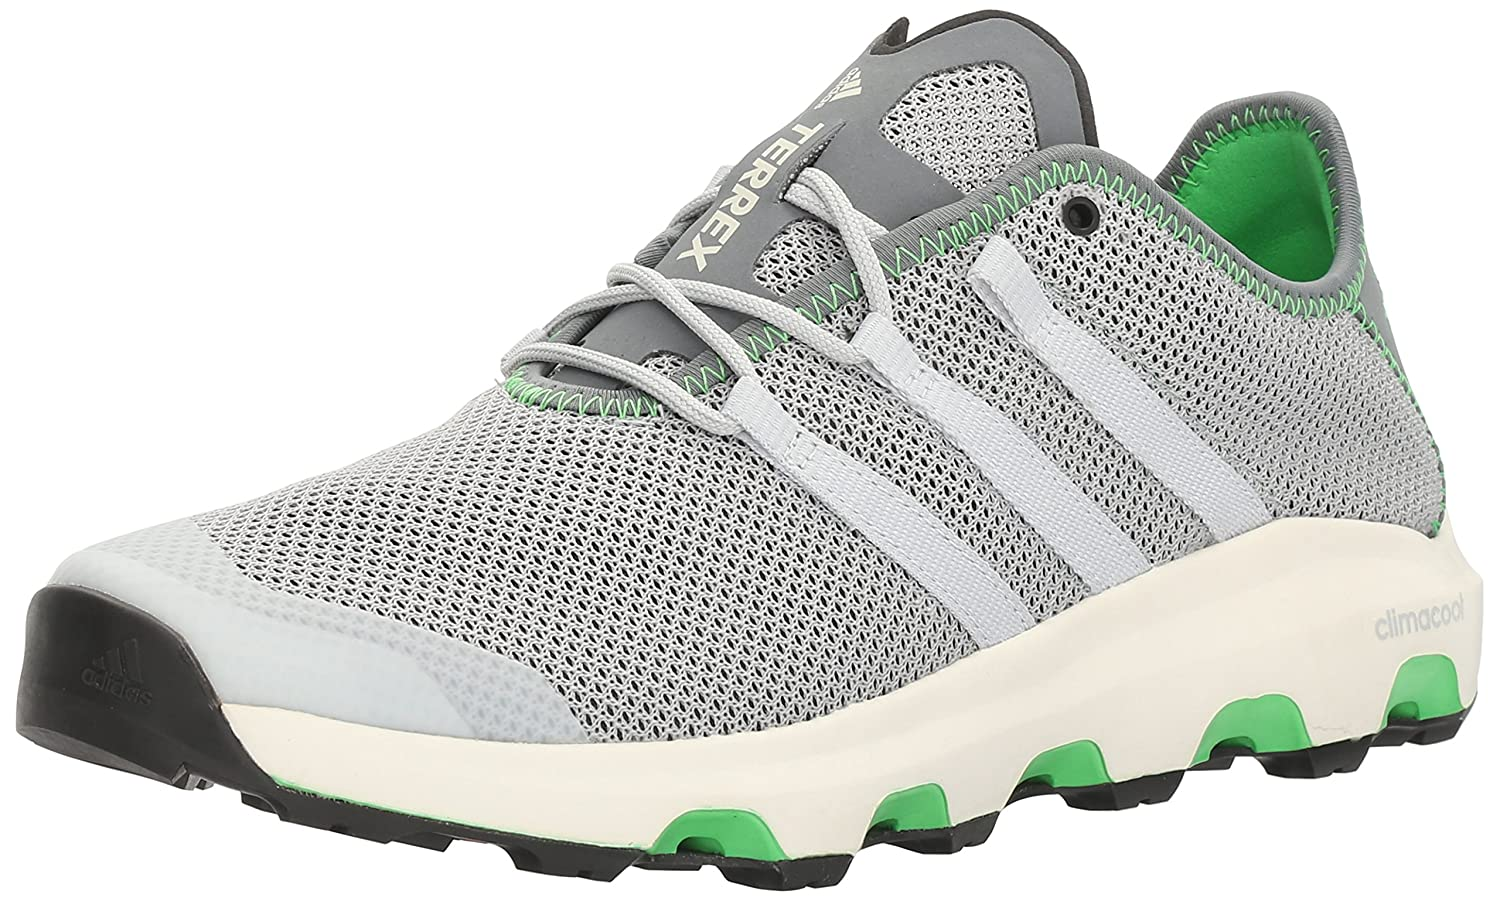 Adidas outdoor Men's Terrex Clear Climacool Voyager Water Schuhe, Clear Terrex Onix/Clear Grau/Energy Grün, 6 M US - 6c7a2a